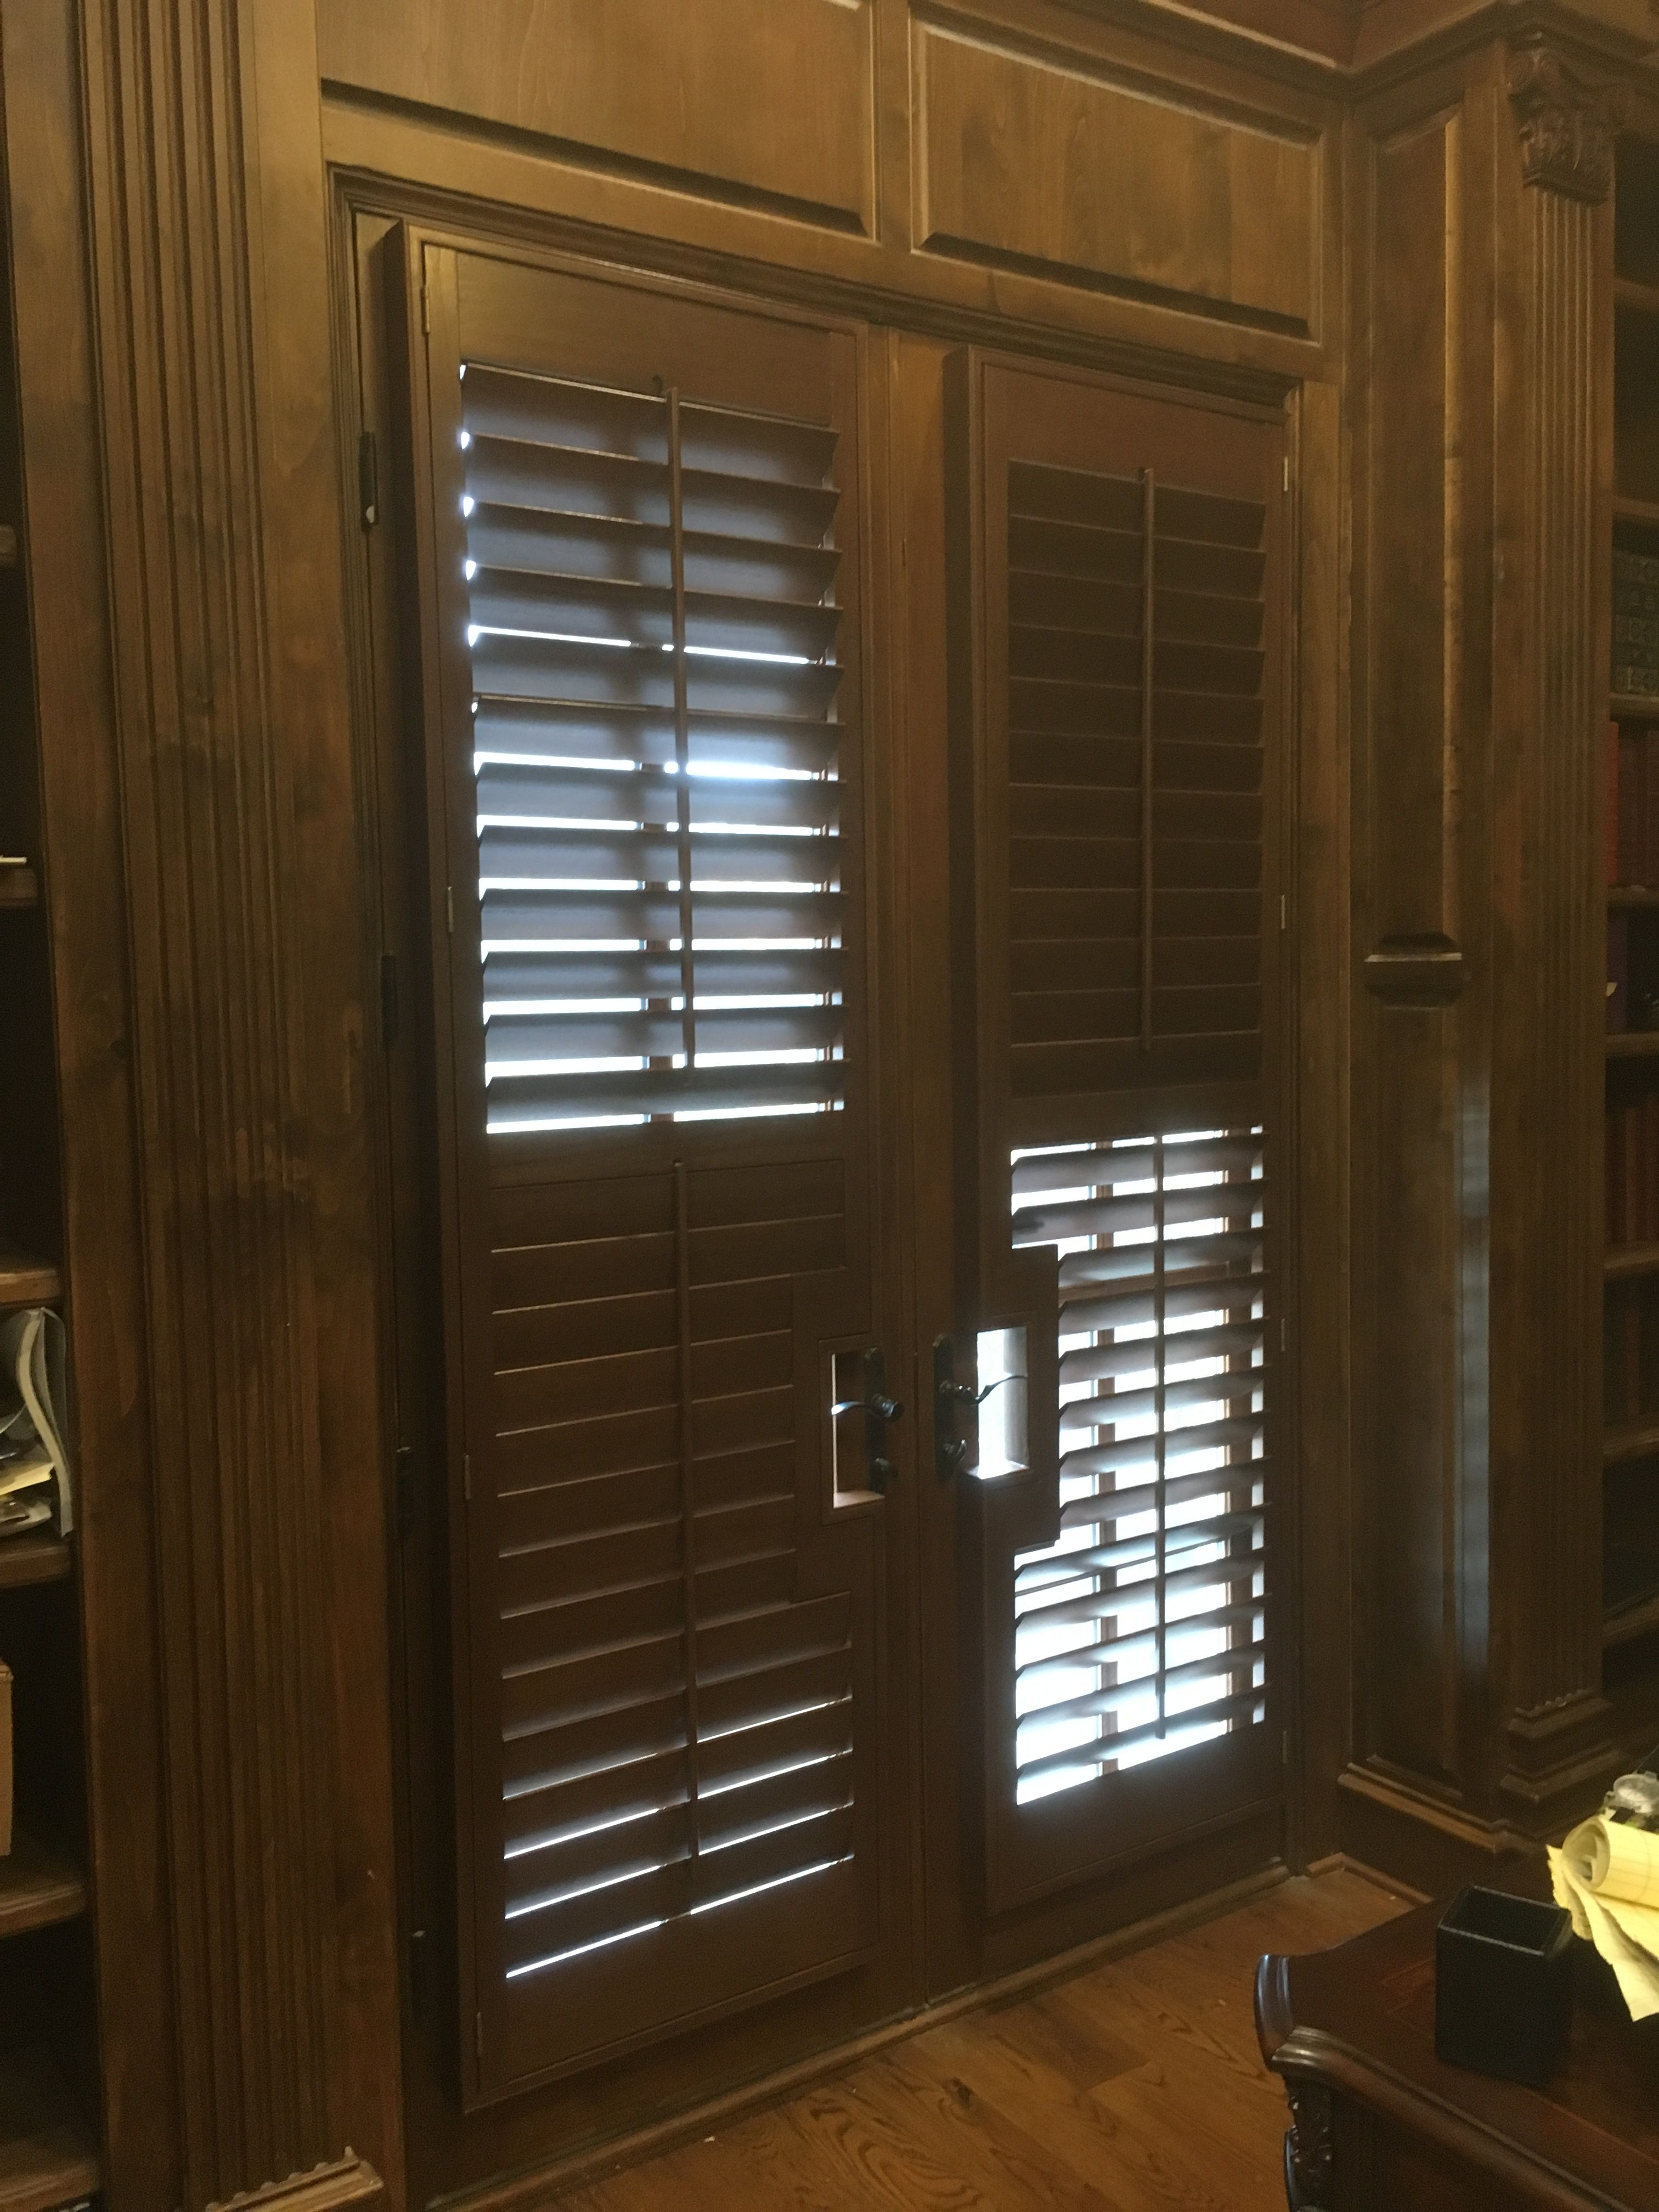 Window dressing ideas for arched windows  pin by budget blinds fort worth on shutters  pinterest